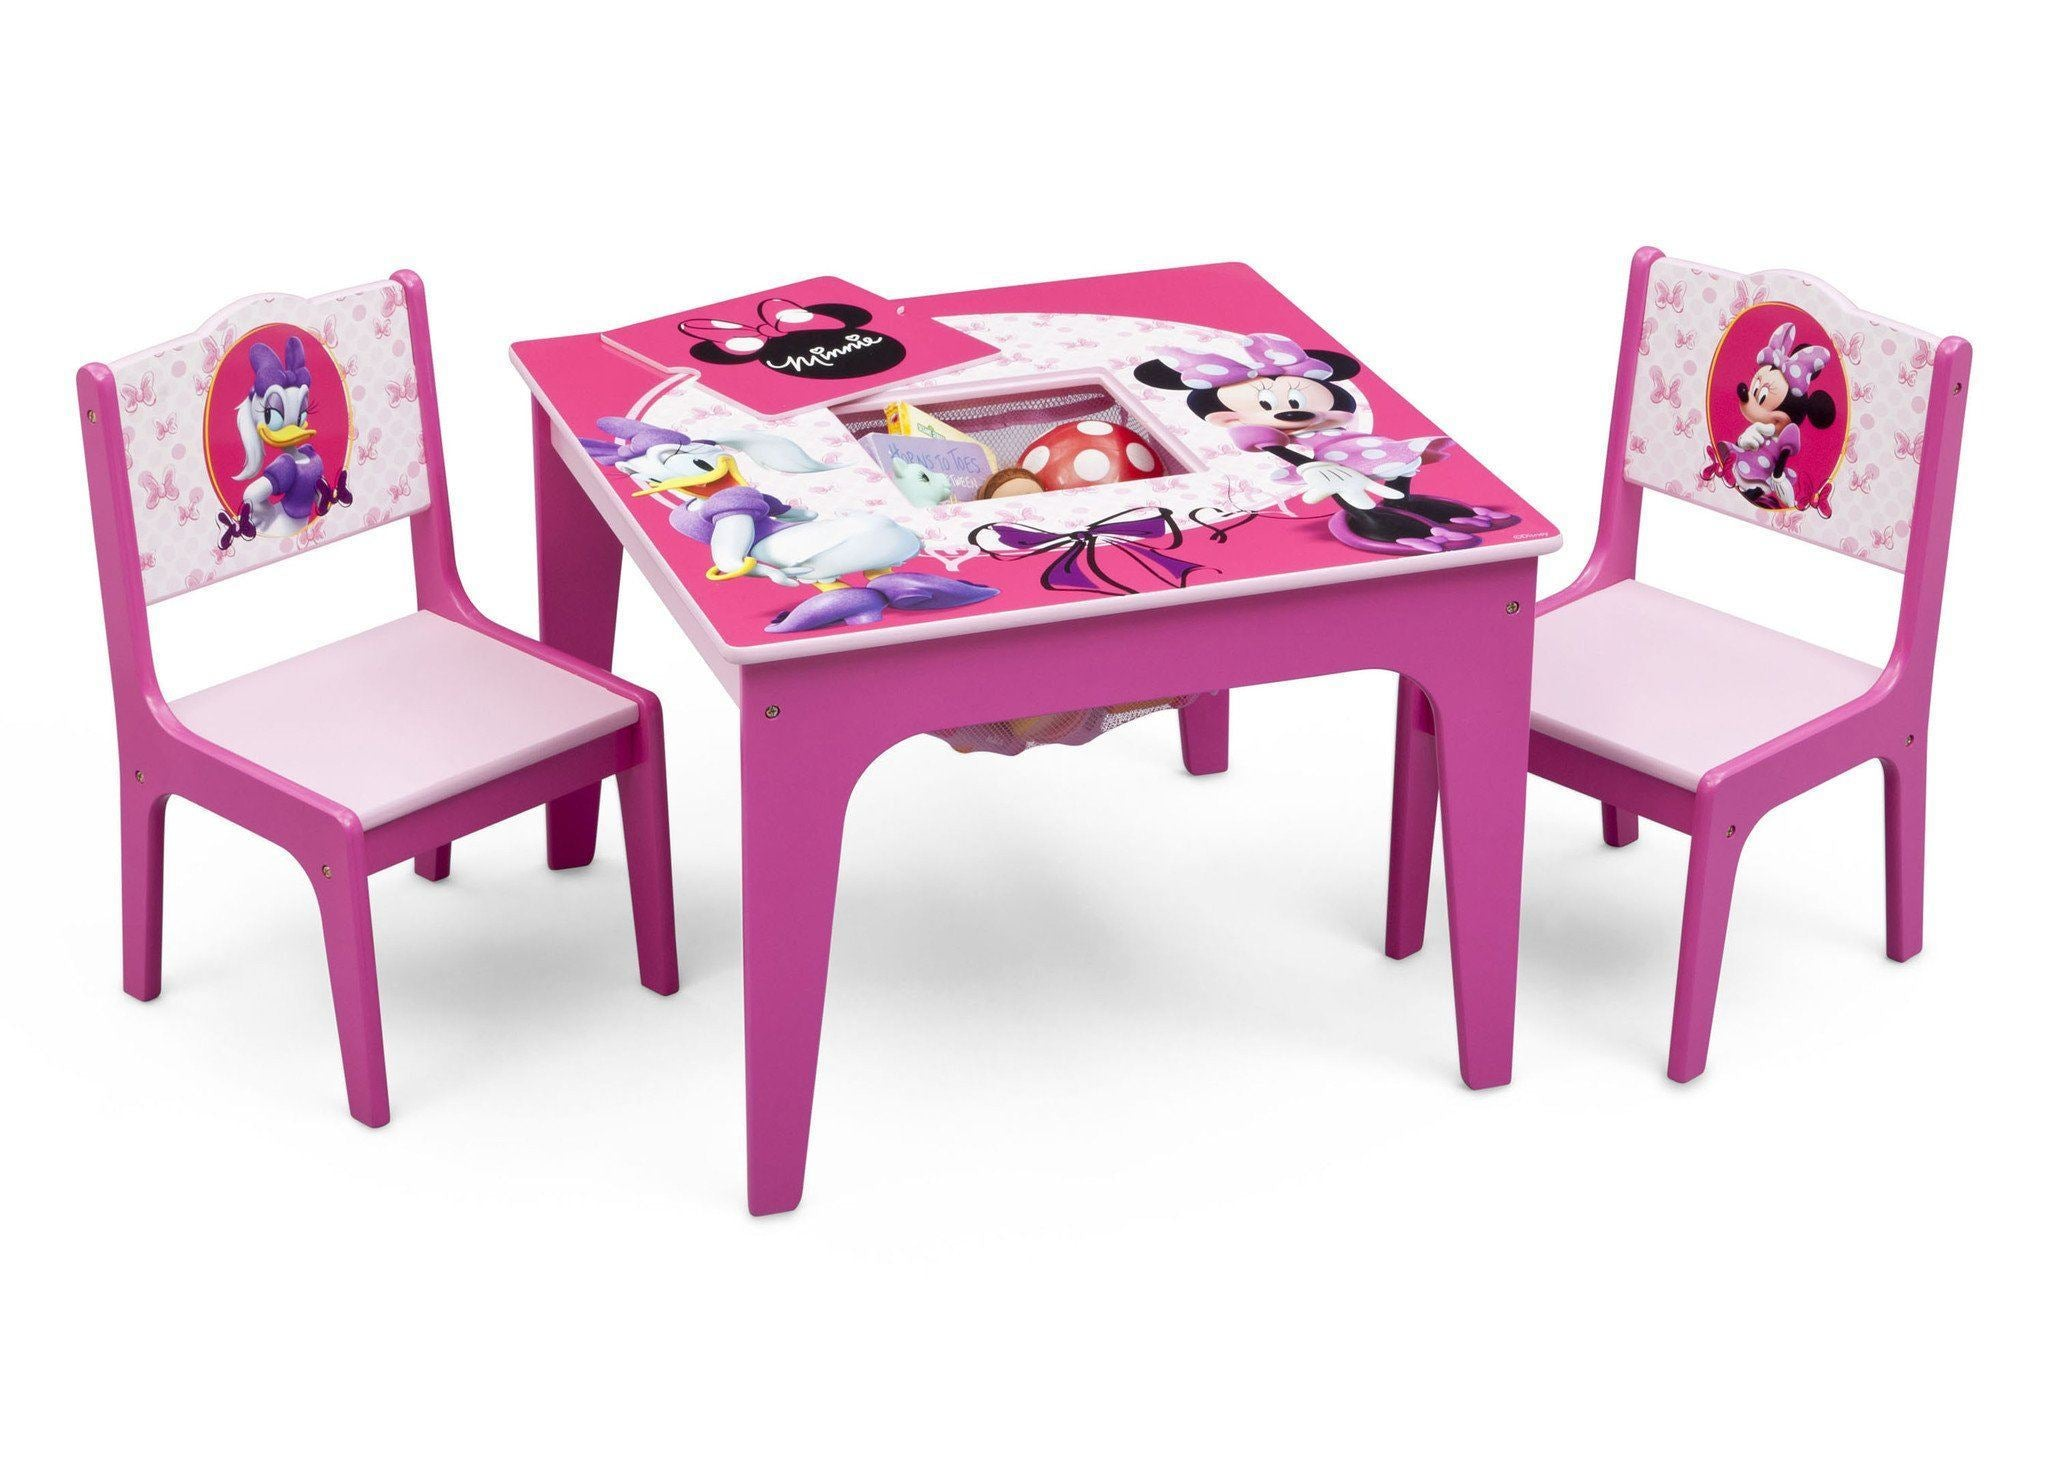 Delta Children Minnie Mouse Deluxe Table and Chair Set with Storage Right View with Props ...  sc 1 st  Delta Children & Minnie Mouse Deluxe Table u0026 Chair Set with Storage | Delta Children